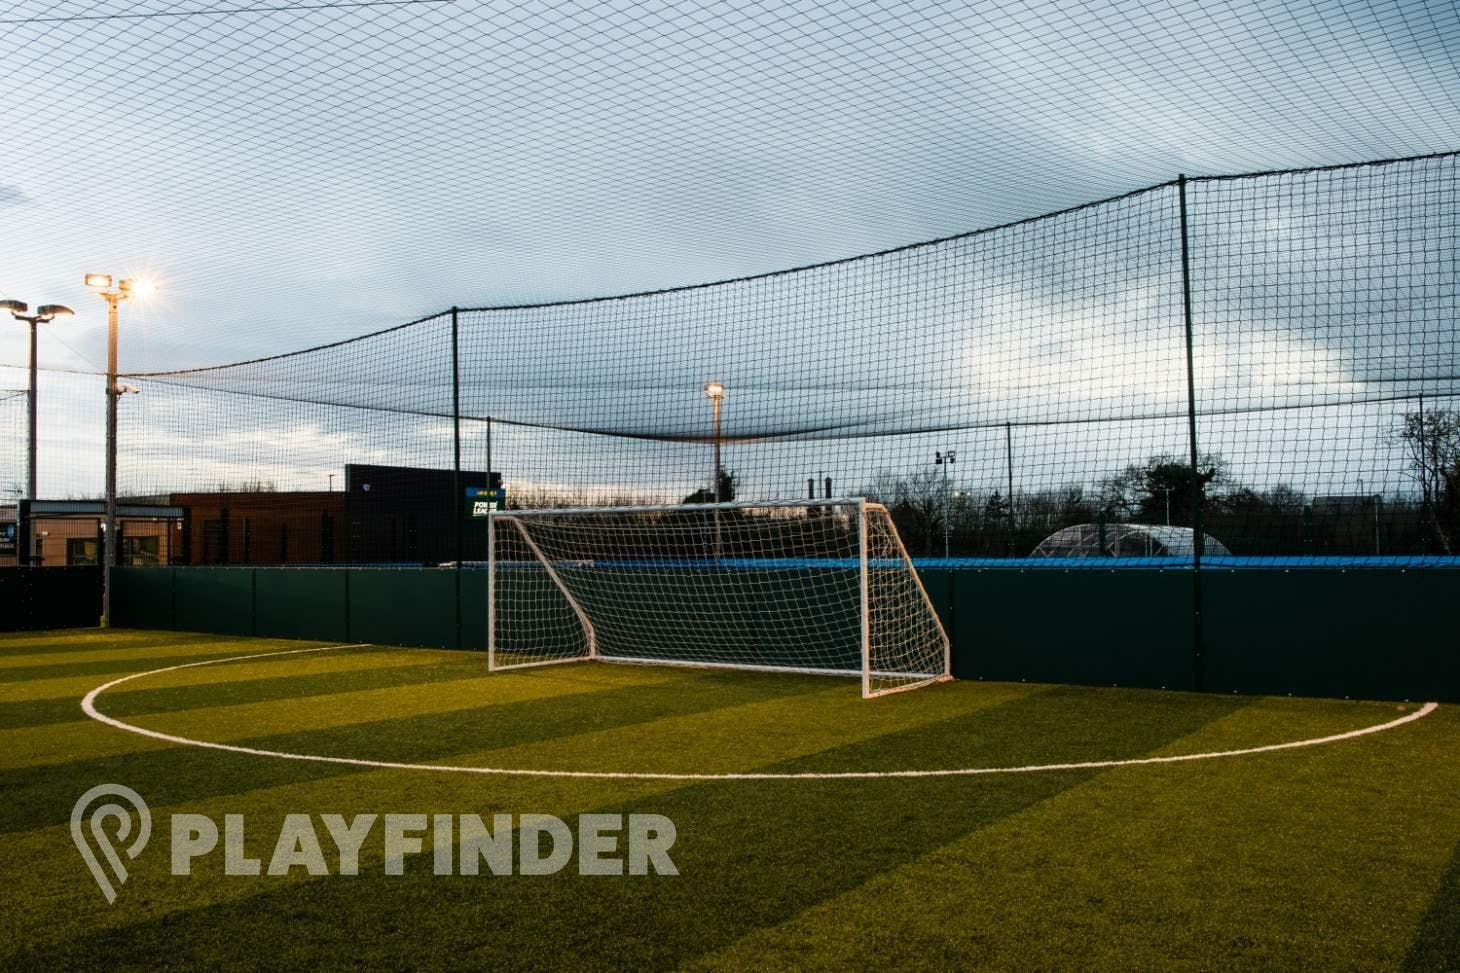 Powerleague Milton Keynes 5 a side | 3G Astroturf football pitch